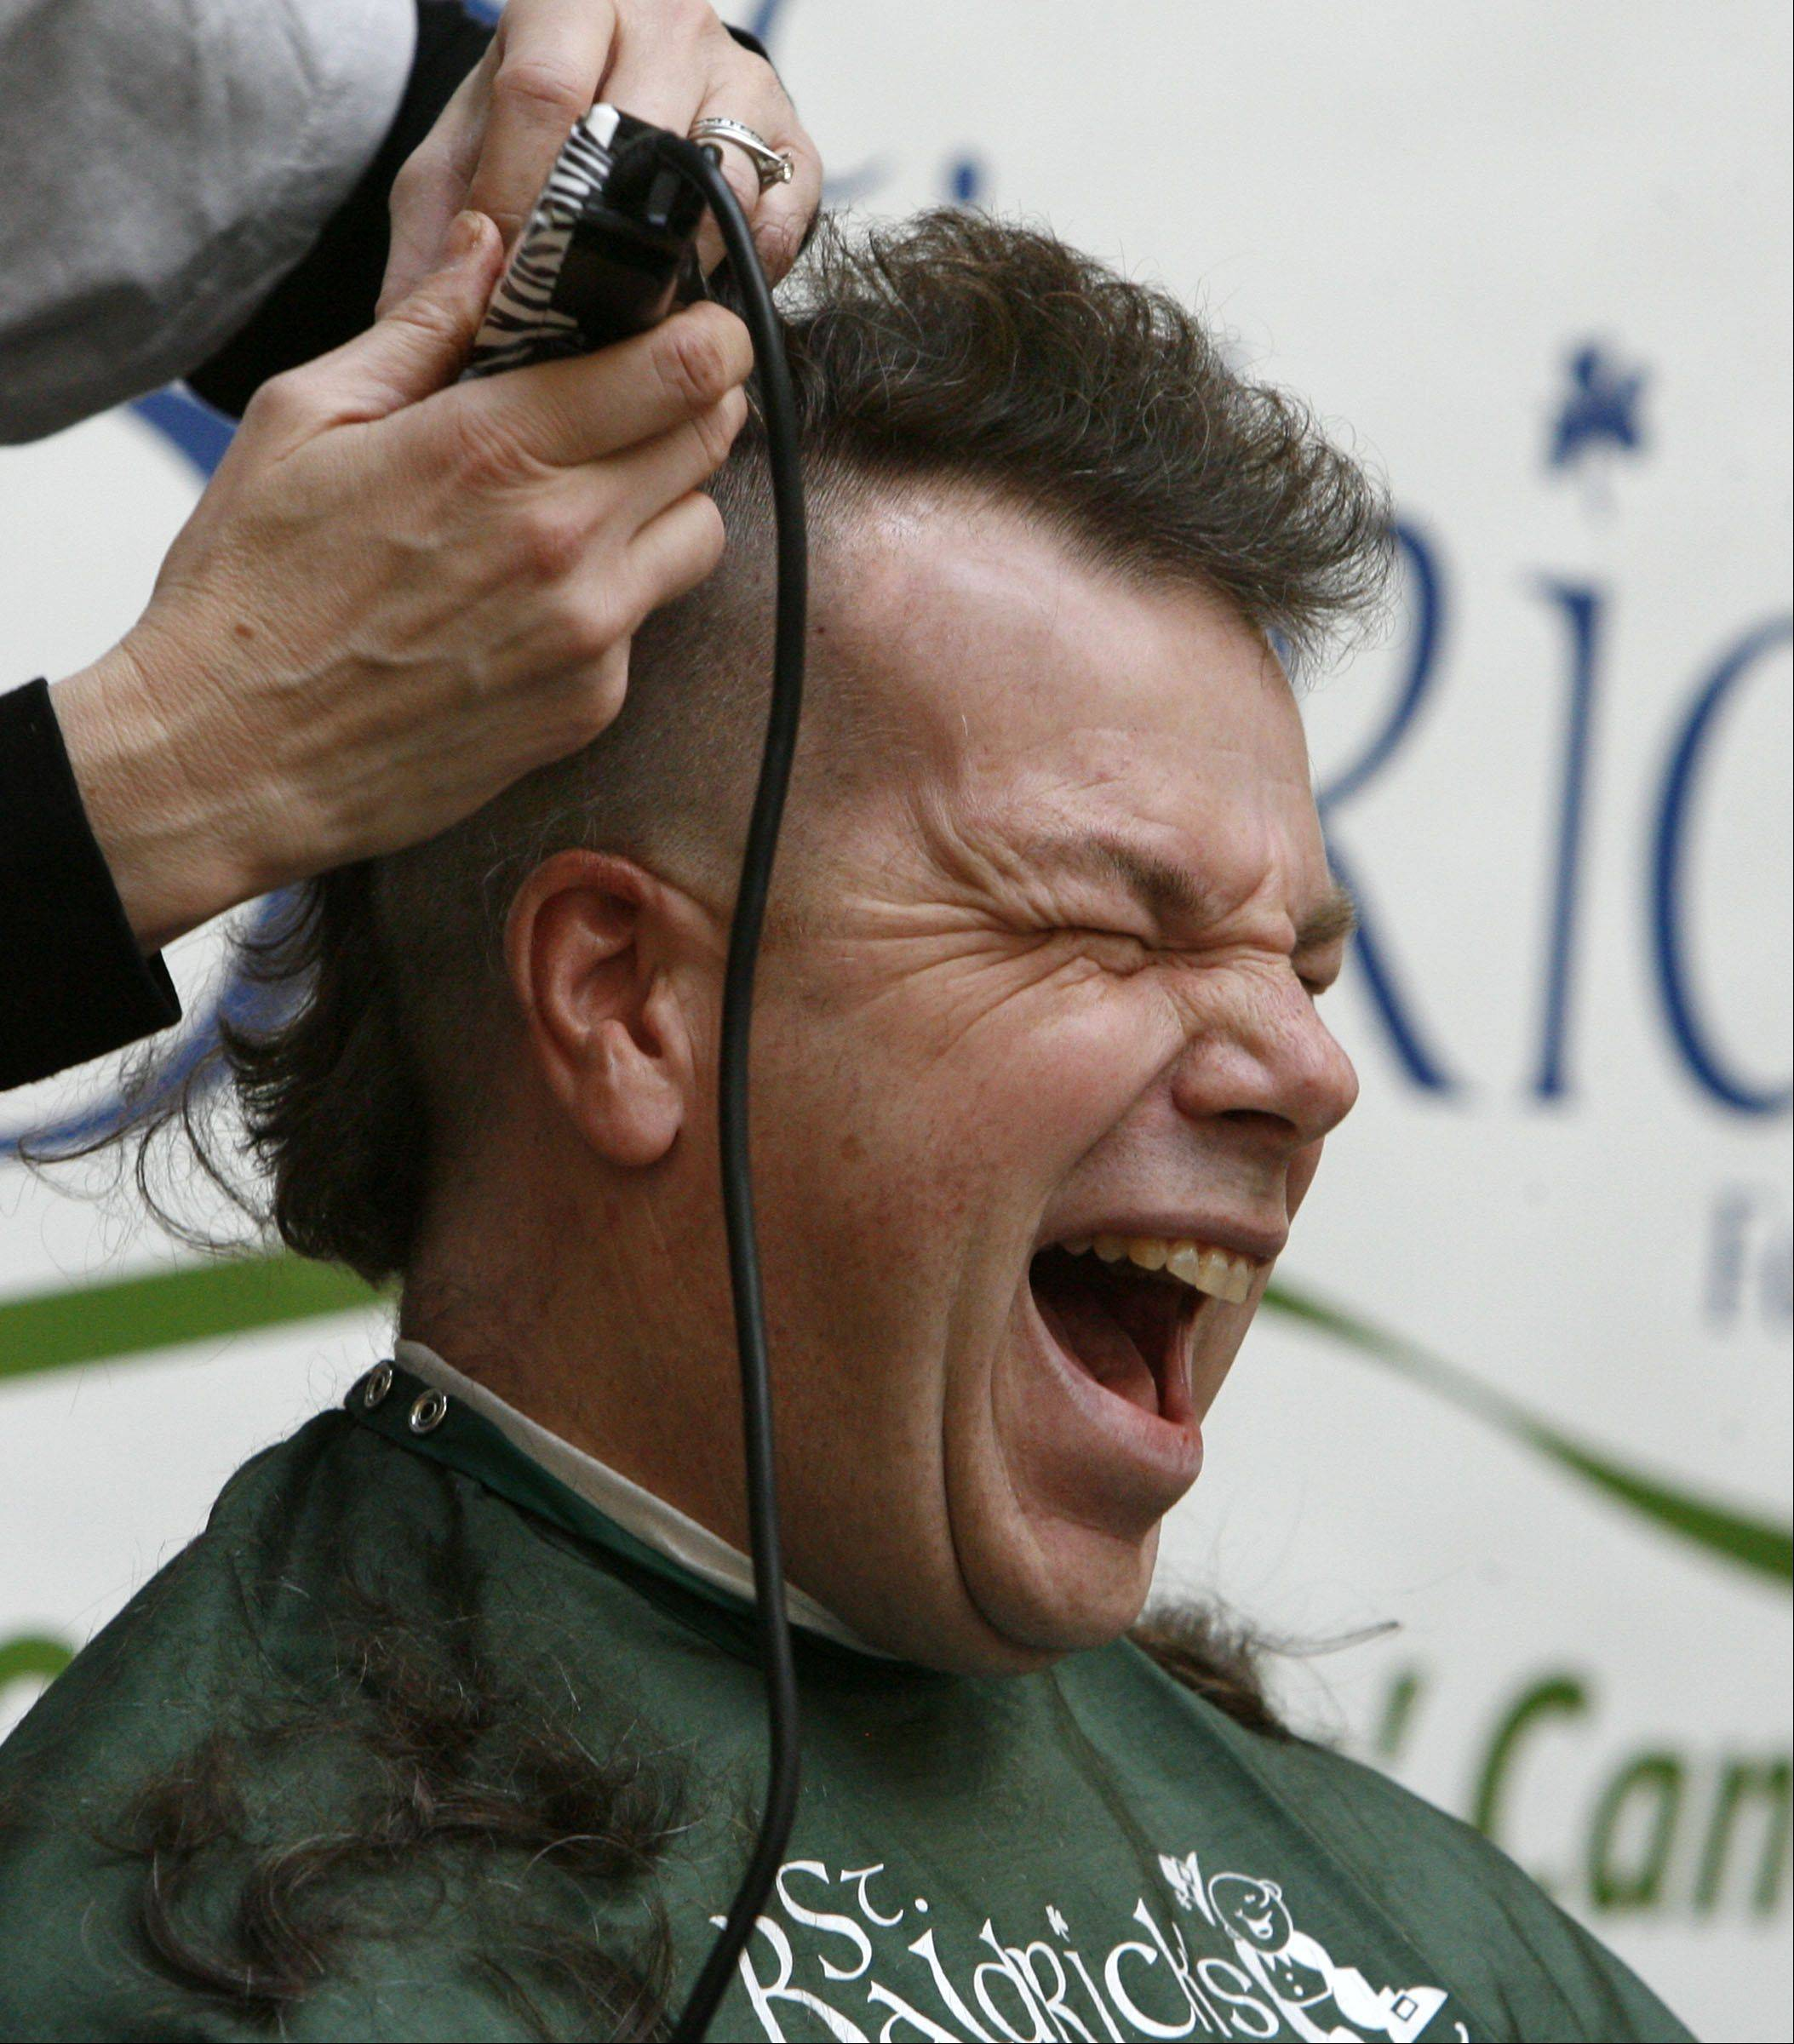 Vernon Hills Police officer Ward Feger reacts to having his head shaved by Martie Gross, with Natural Beauty Salon in Wisconsin, during the Vernon Hills St. Baldrick�s event, to raise money to fight childhood cancer, held at Westfield Hawthorn Mall in Vernon Hills on Saturday, March 10th.